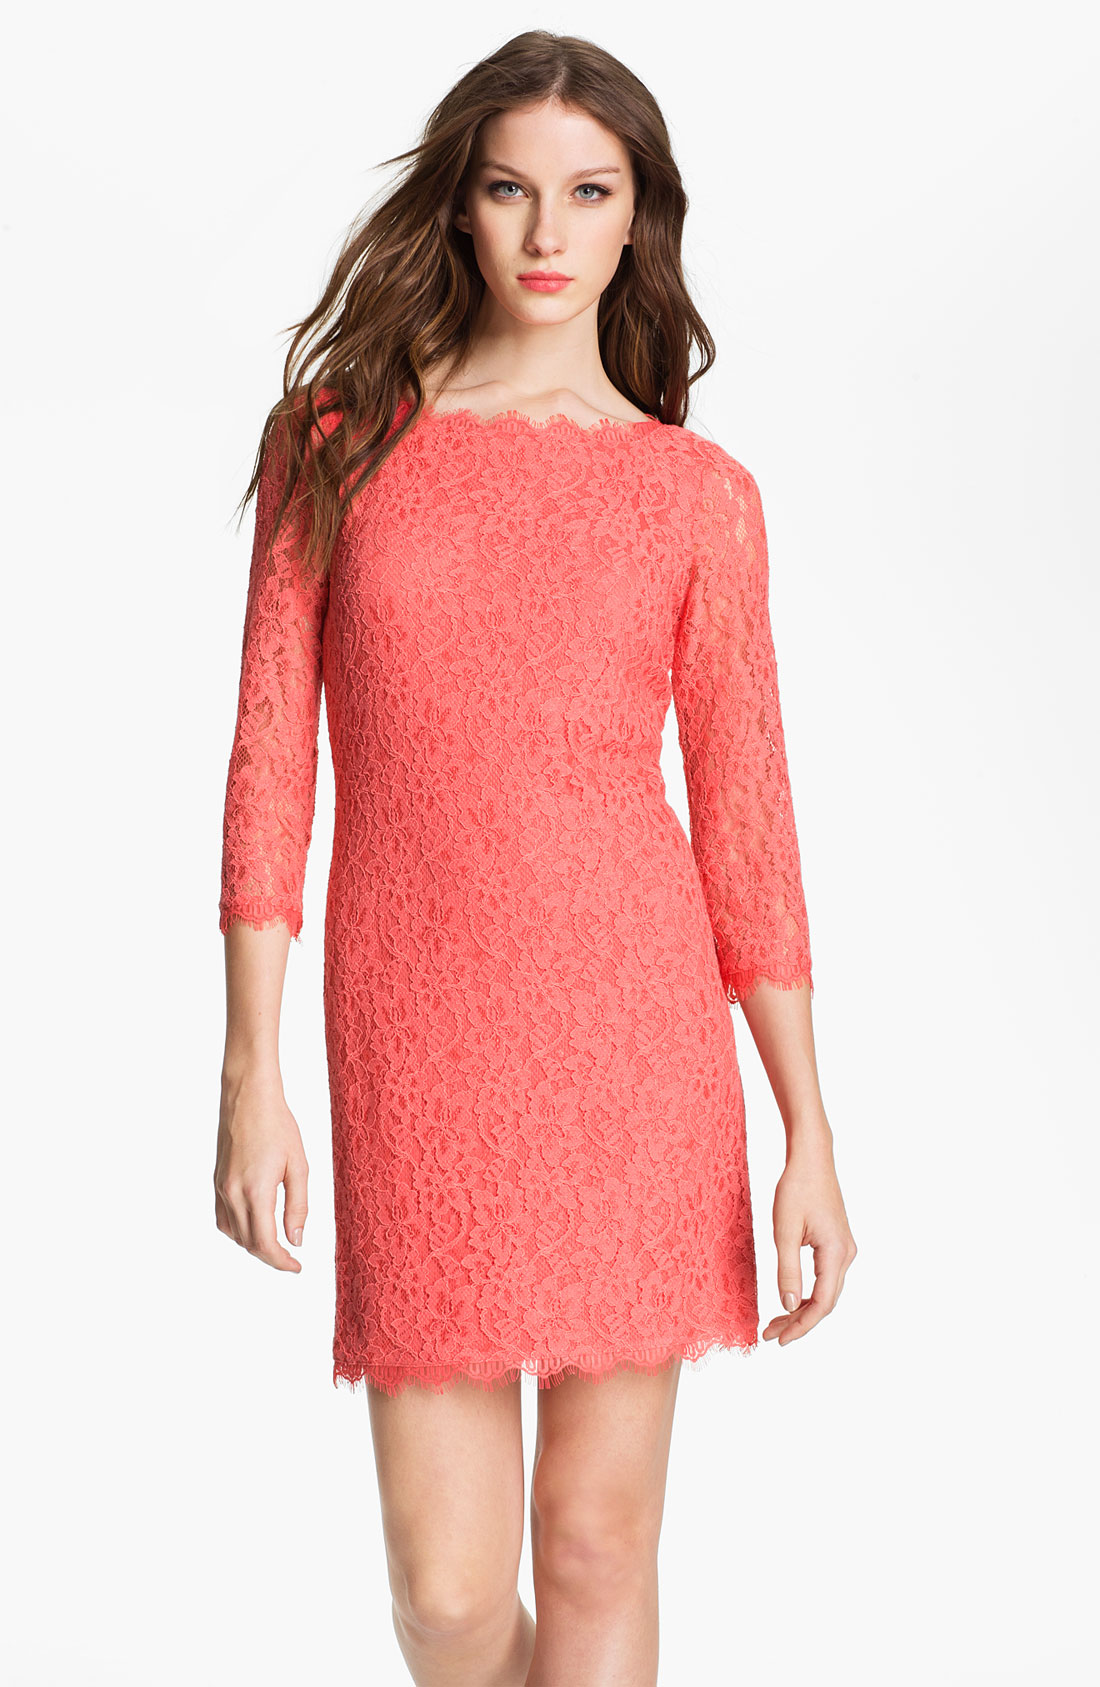 Dvf Red Lace Dress View Fullscreen